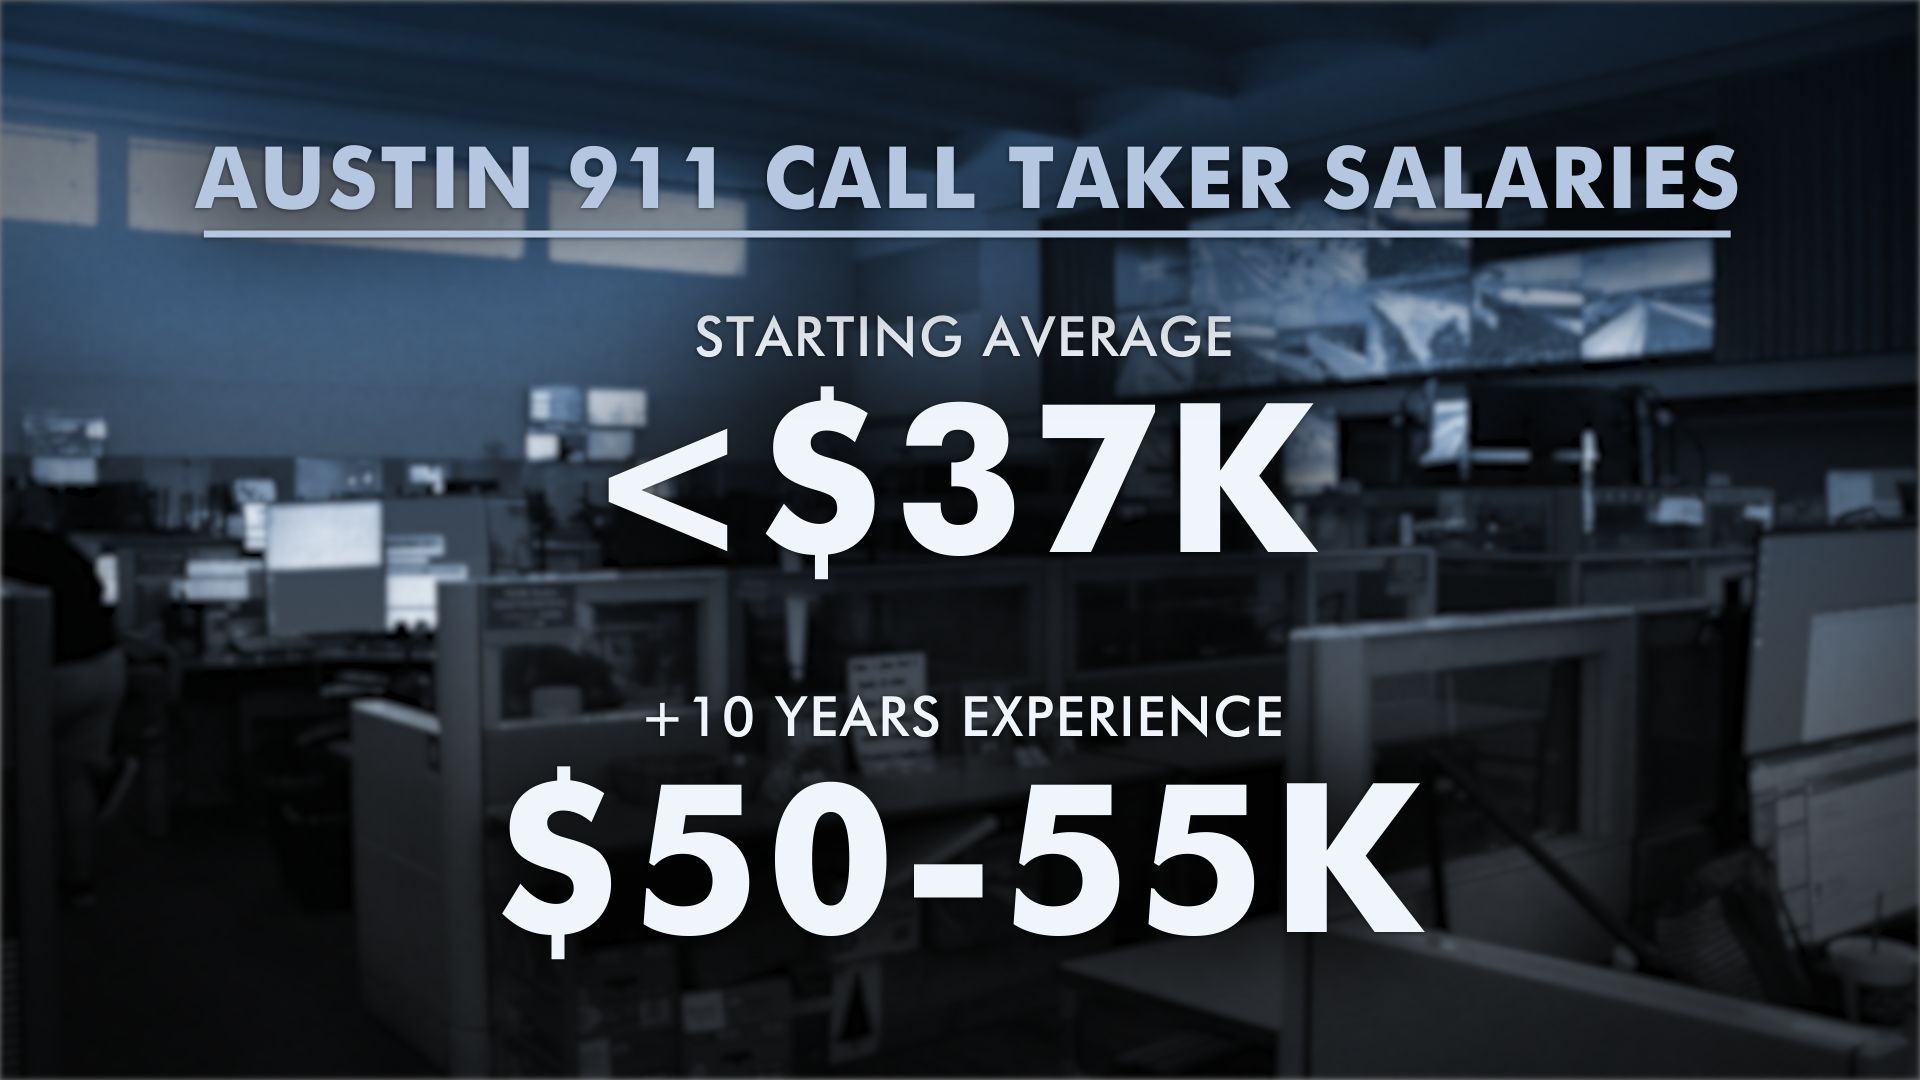 911 call takers' salaries start around $37,000 and increase to more than $50,000 with more than 10 years' experience (KXAN Photo)